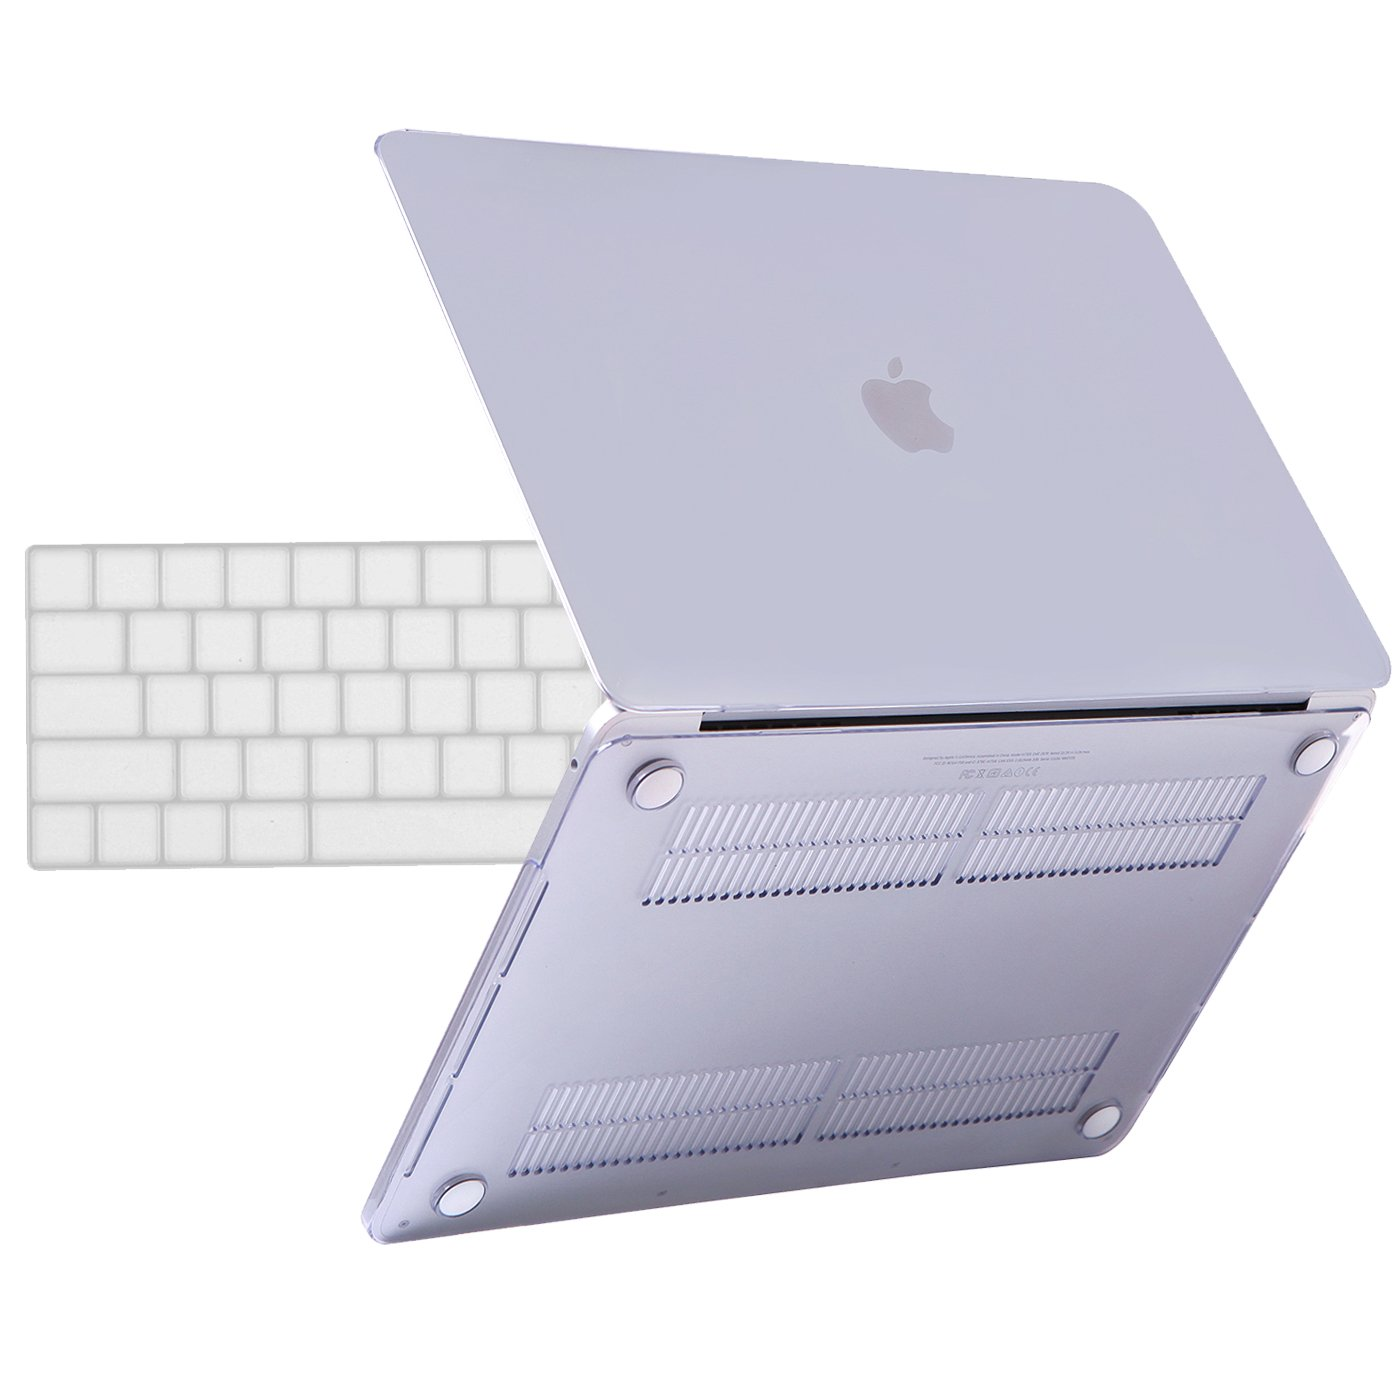 HDE MacBook Pro 13 Inch Case (2019 2018 2017 2016 Release) Rubberized Plastic Hard Shell Cover Keyboard Skin for Model A2159 A1989 A1706 A1708 Newest MacBook Pro 13 with or Without Touch Bar - Clear